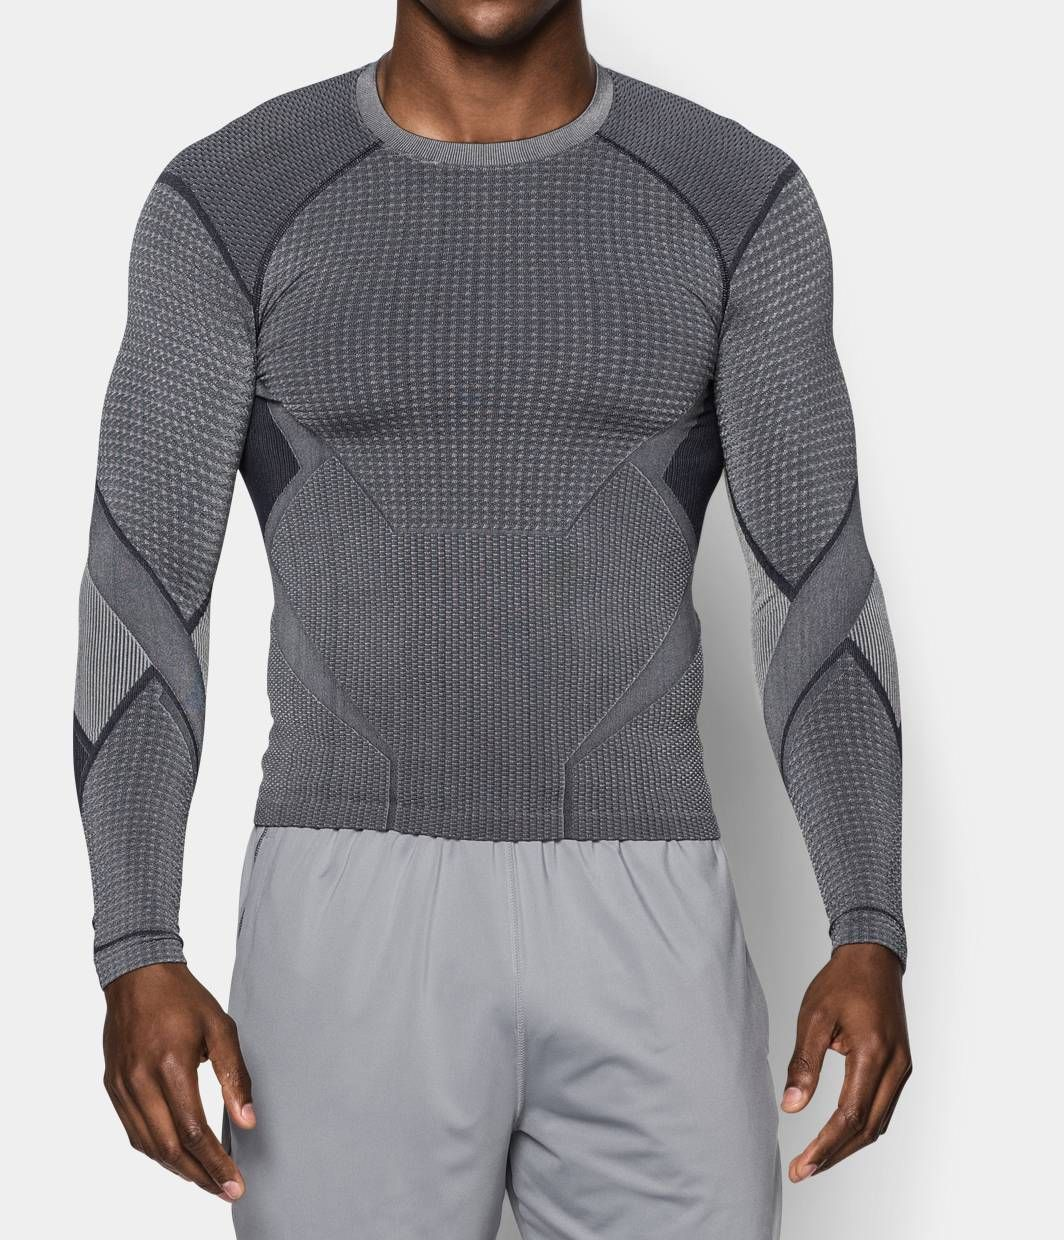 d00e2a38 Men's Quicksilver Seamless Long Sleeve Compression Shirt | Under Armour US